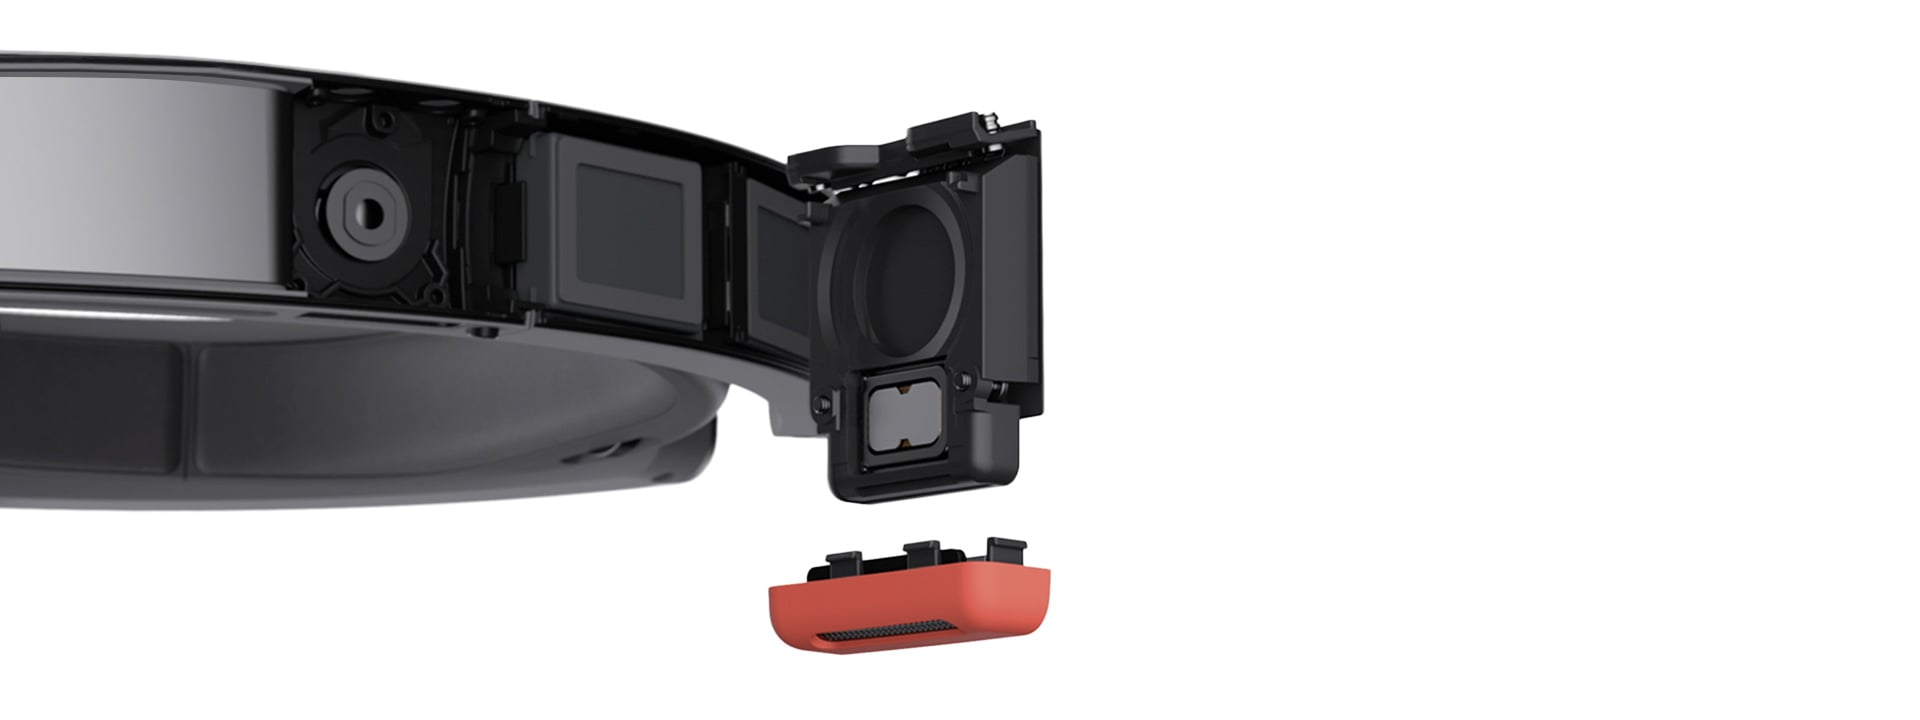 Cross-section of HoloLens speaker revealing internal components